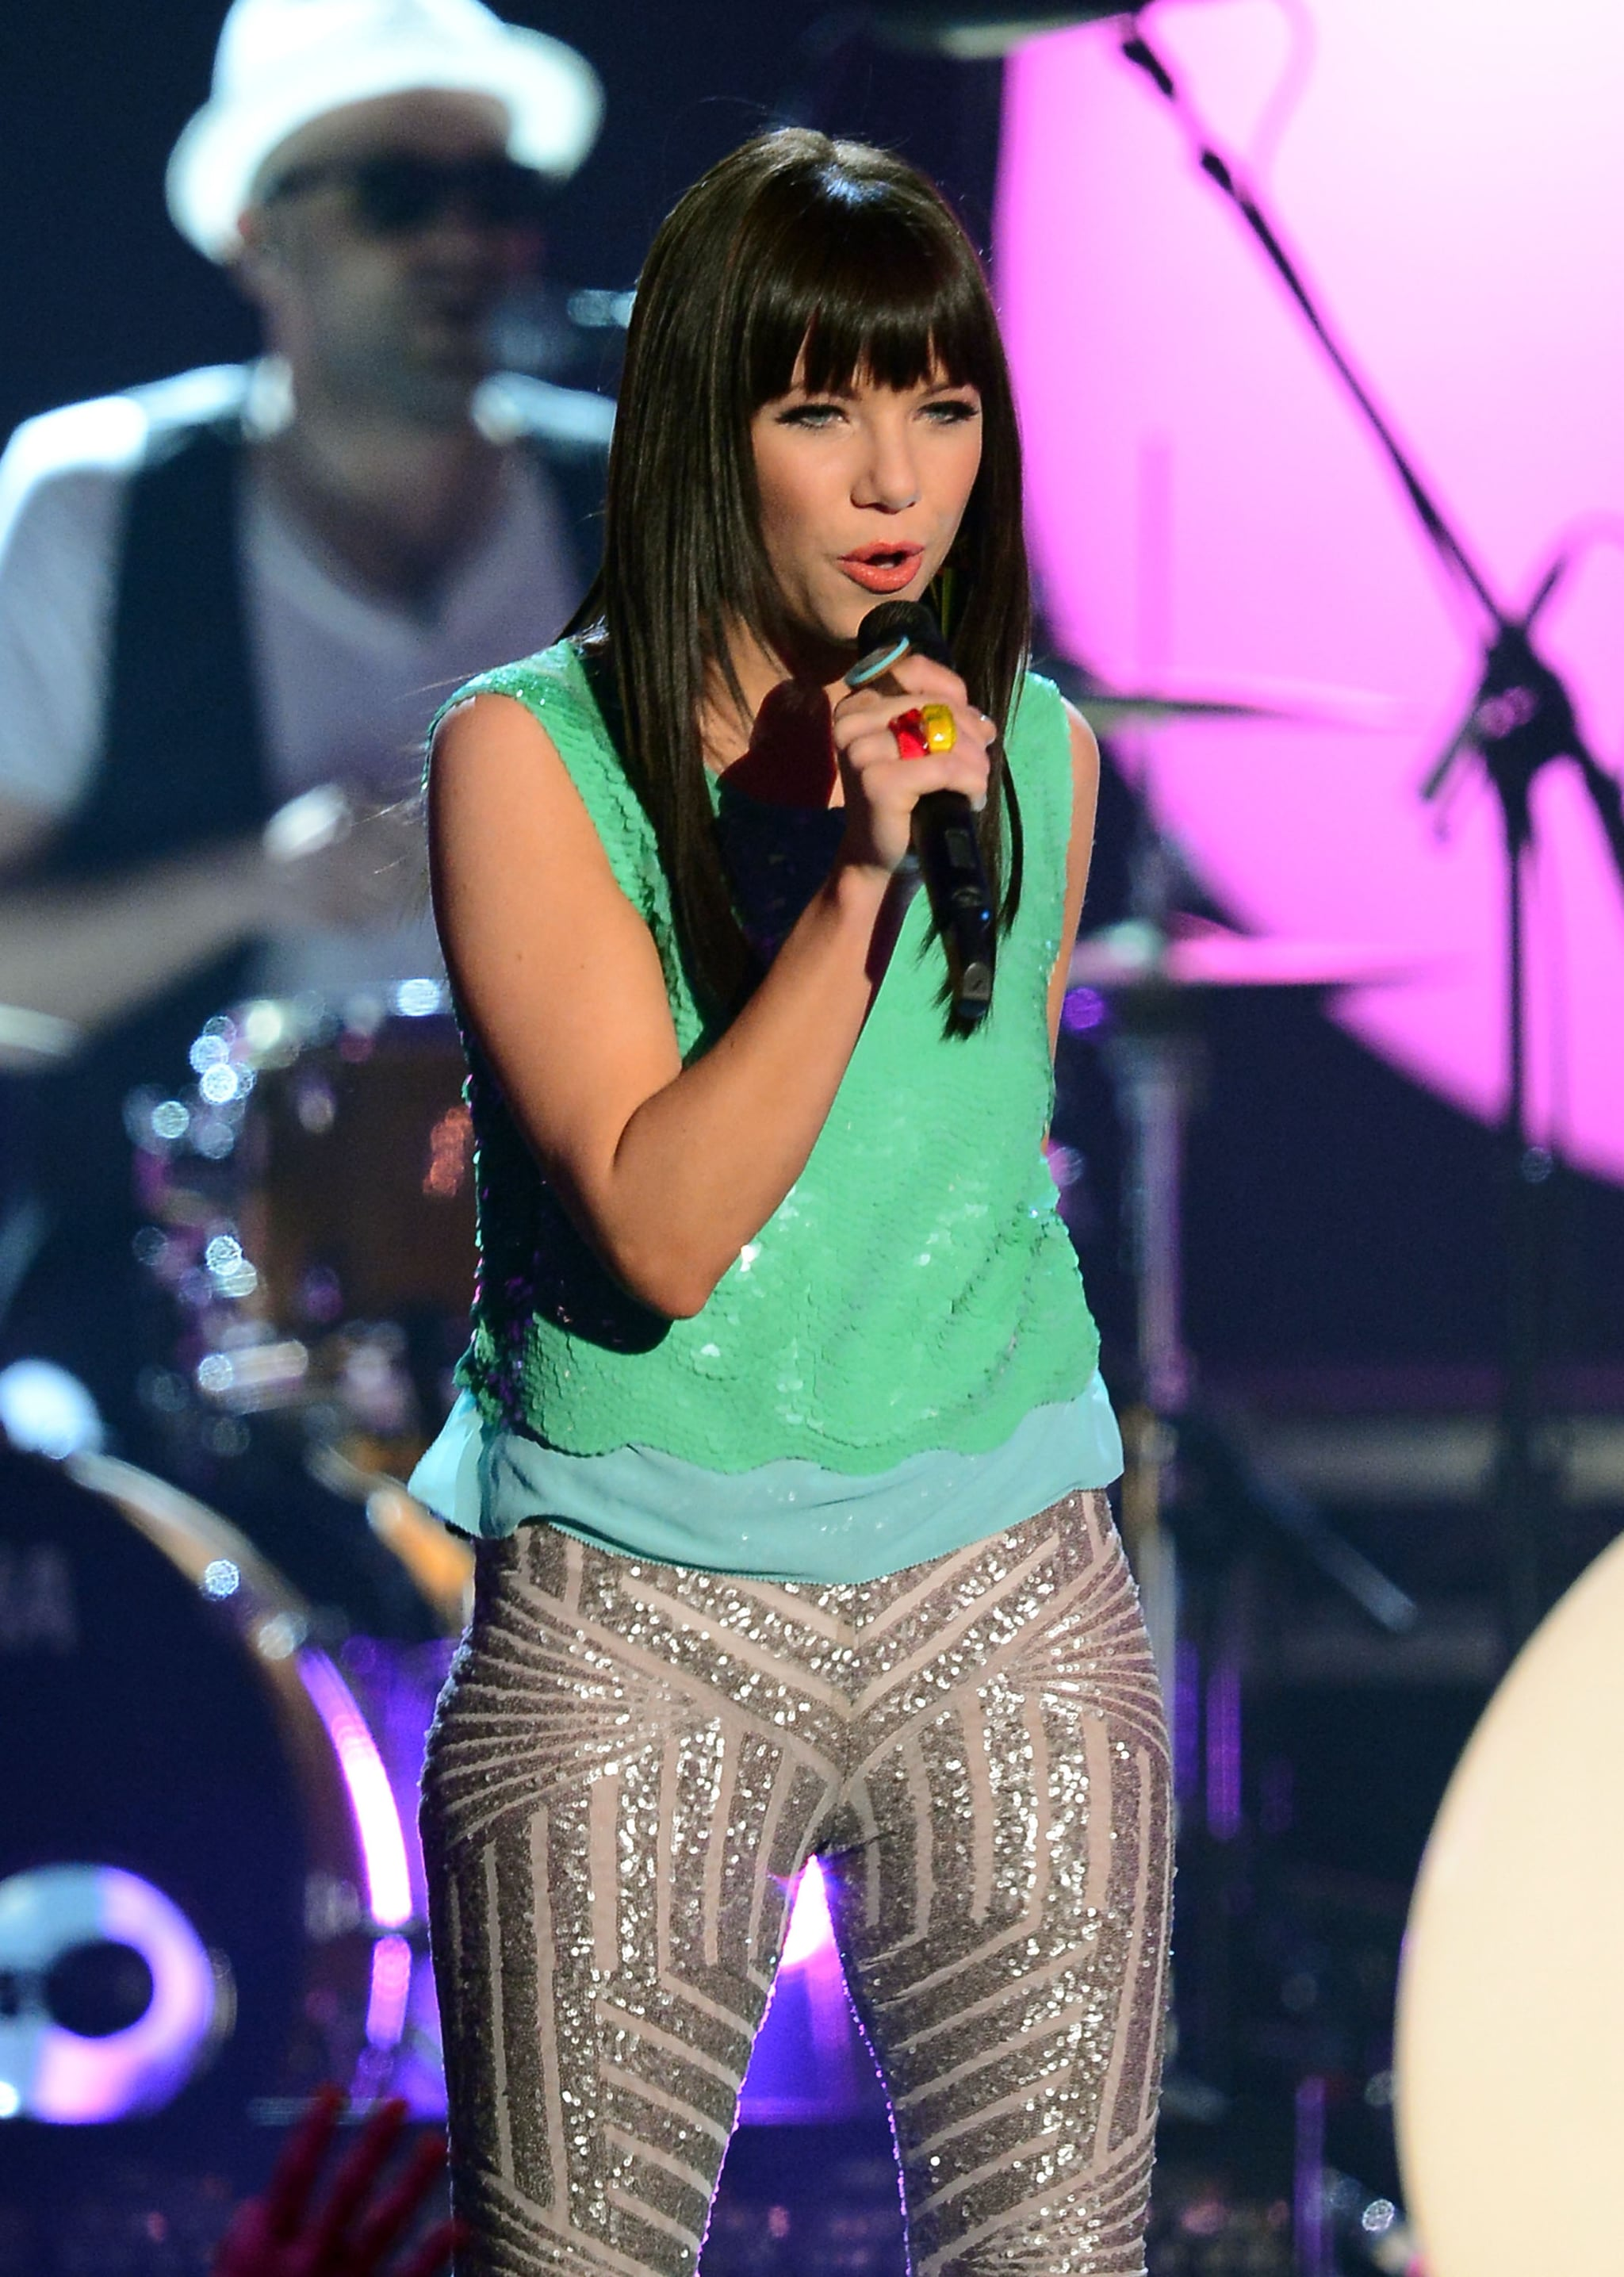 """Carly Rae Jepsen performed her hit song """"Call Me Maybe"""" at the May 2012 Billboard Music Awards."""